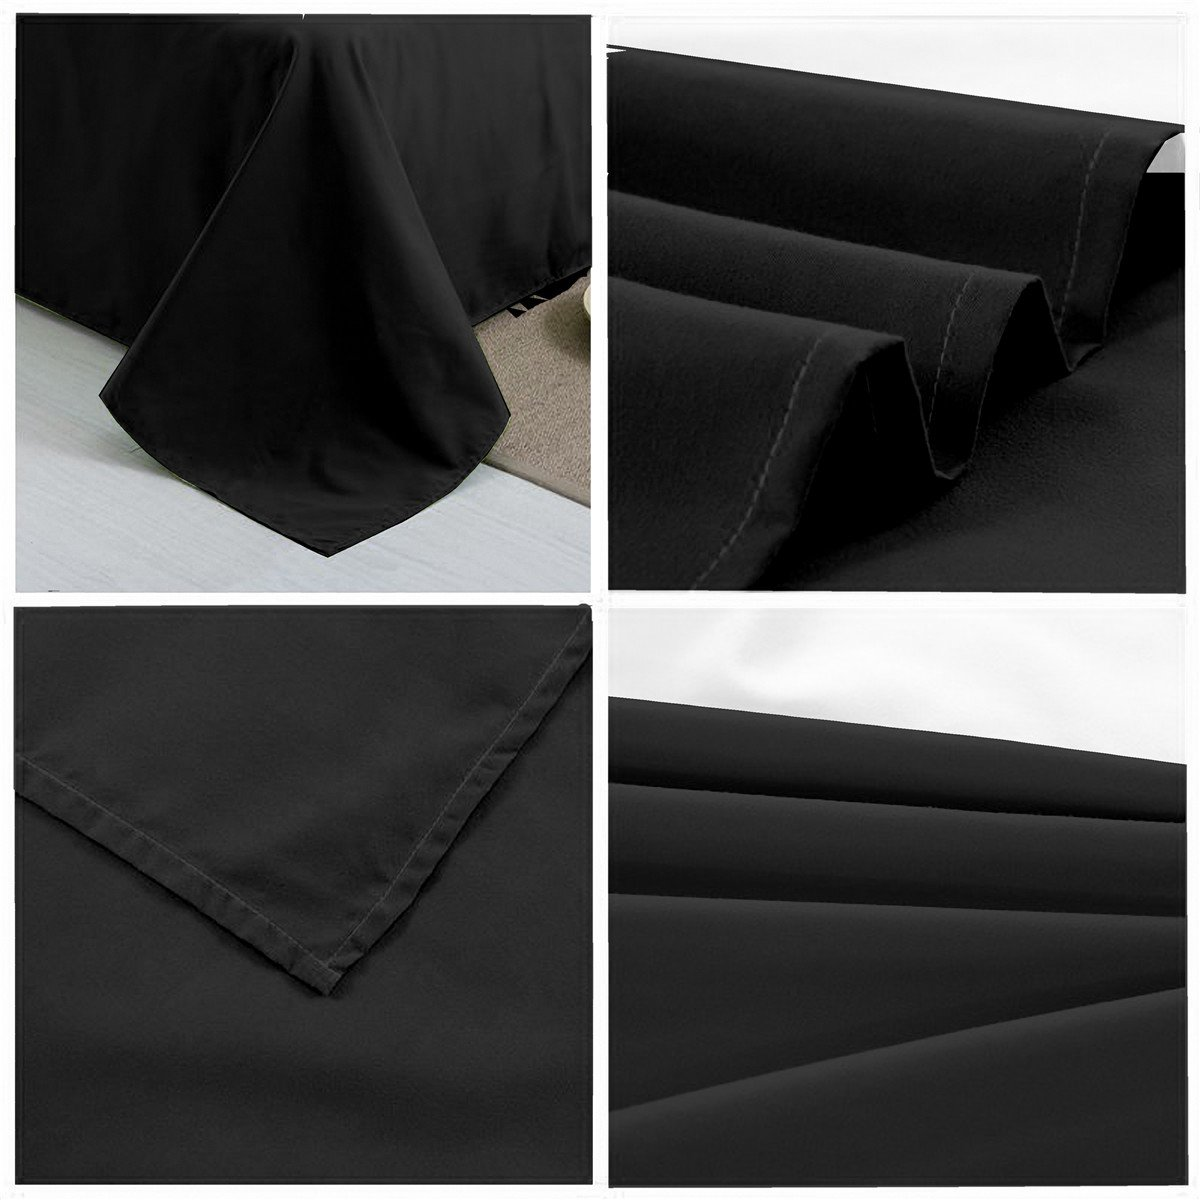 CC&DD HOME FASHION Flat Sheet, Velvety Brushed Microfiber, Soft/Comfortable, Twin, Black CC&DD INC FLT